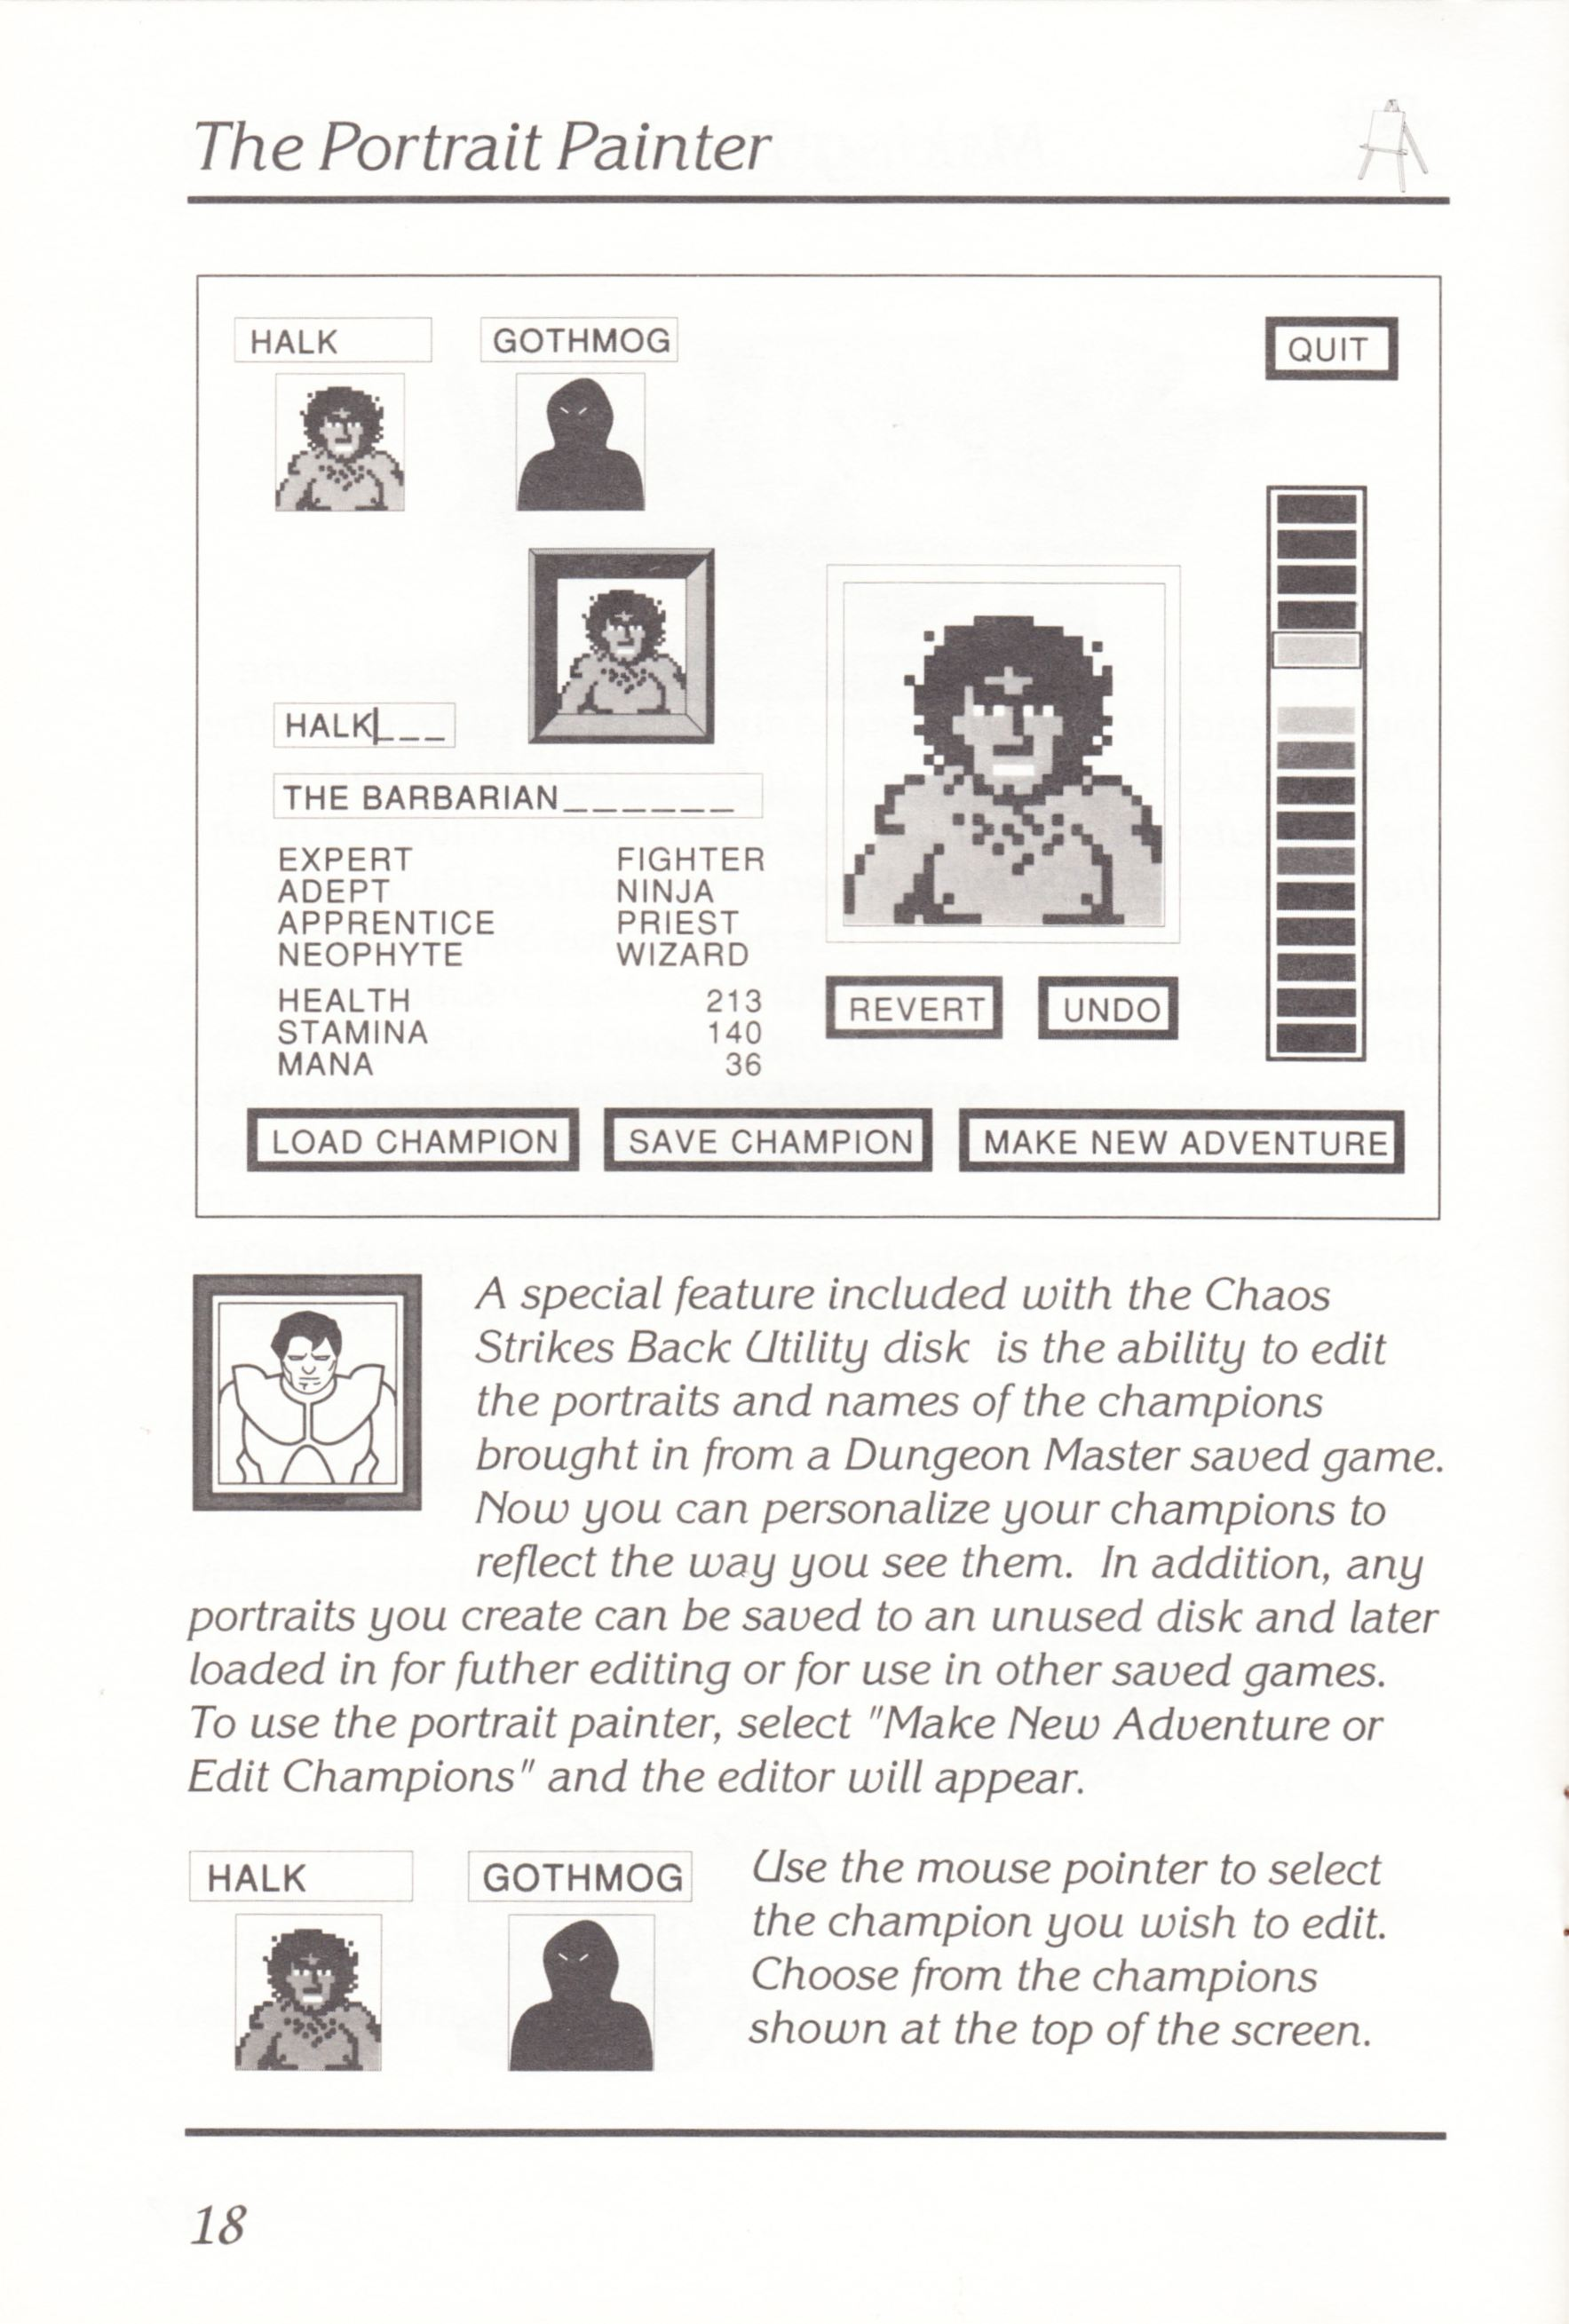 Game - Chaos Strikes Back - UK - Atari ST - Manual - Page 020 - Scan